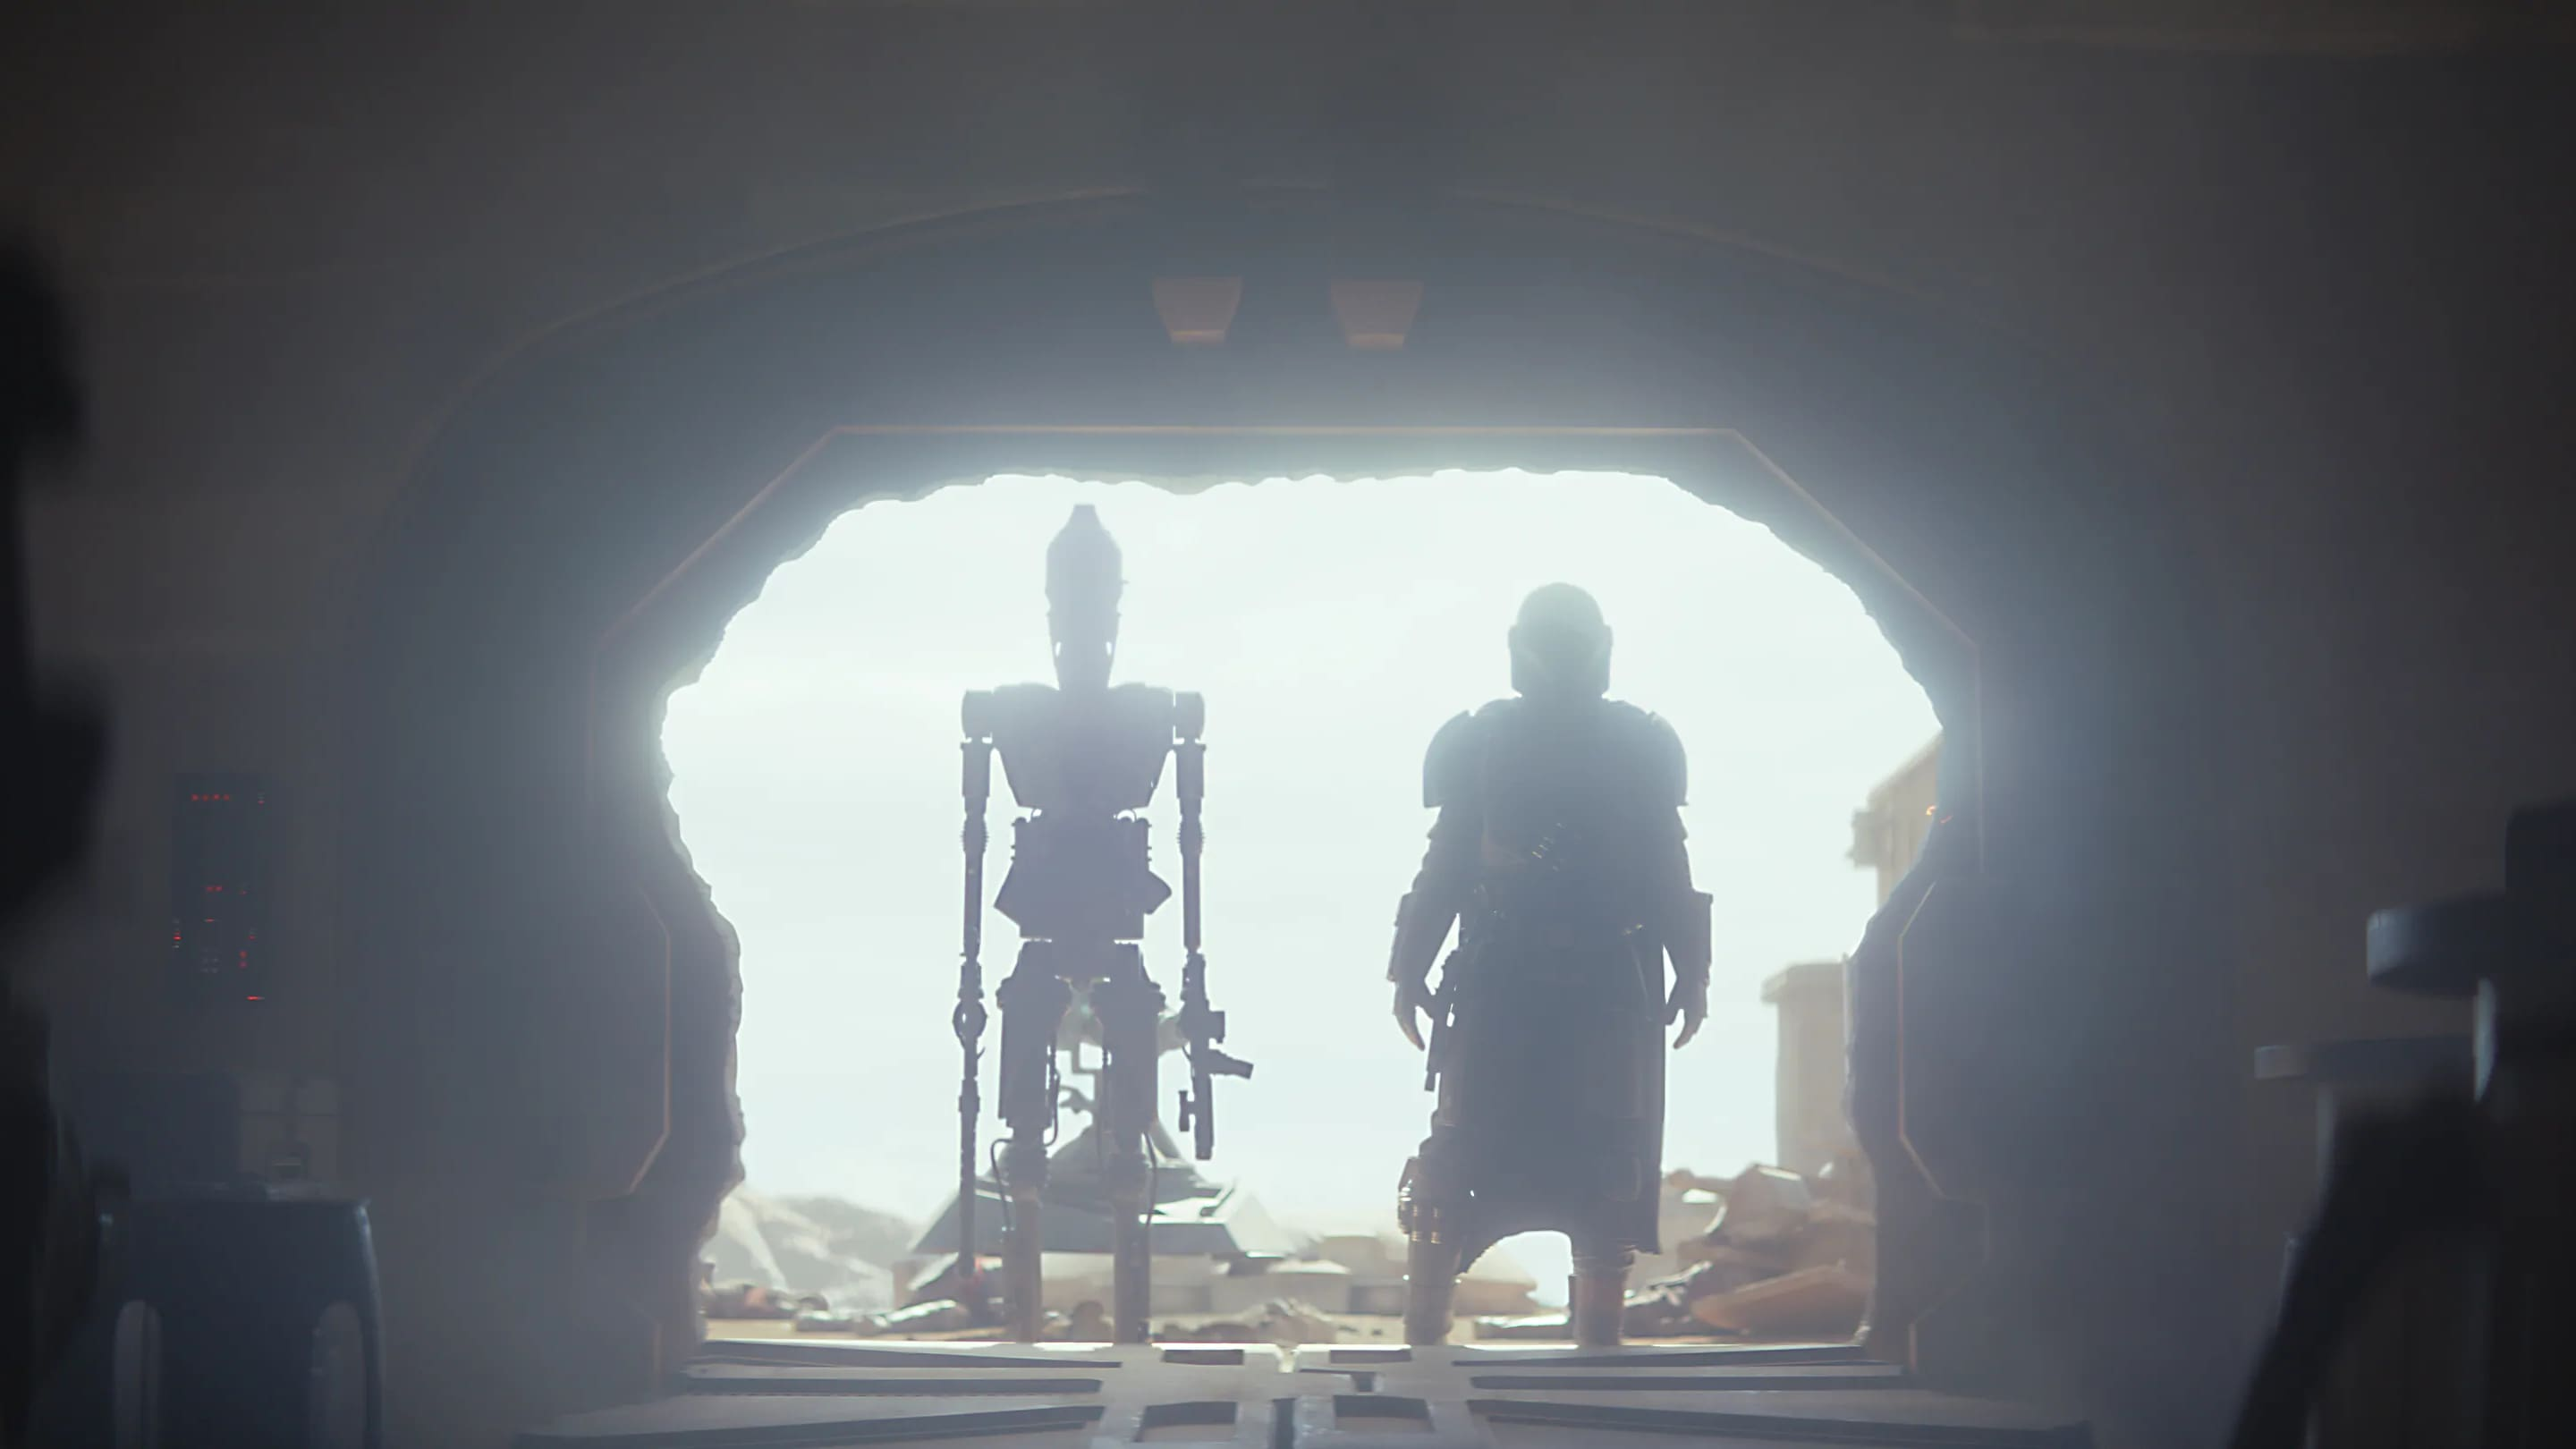 Caption :IG-11 (Taika Waititi) and The Mandalorian (Pedro Pascal) in the Disney+ series THE MANDALORIAN. Byline :Lucasfilm Ltd. Copyright :(c) 2019 Lucasfilm Ltd. All Rights Reserved.